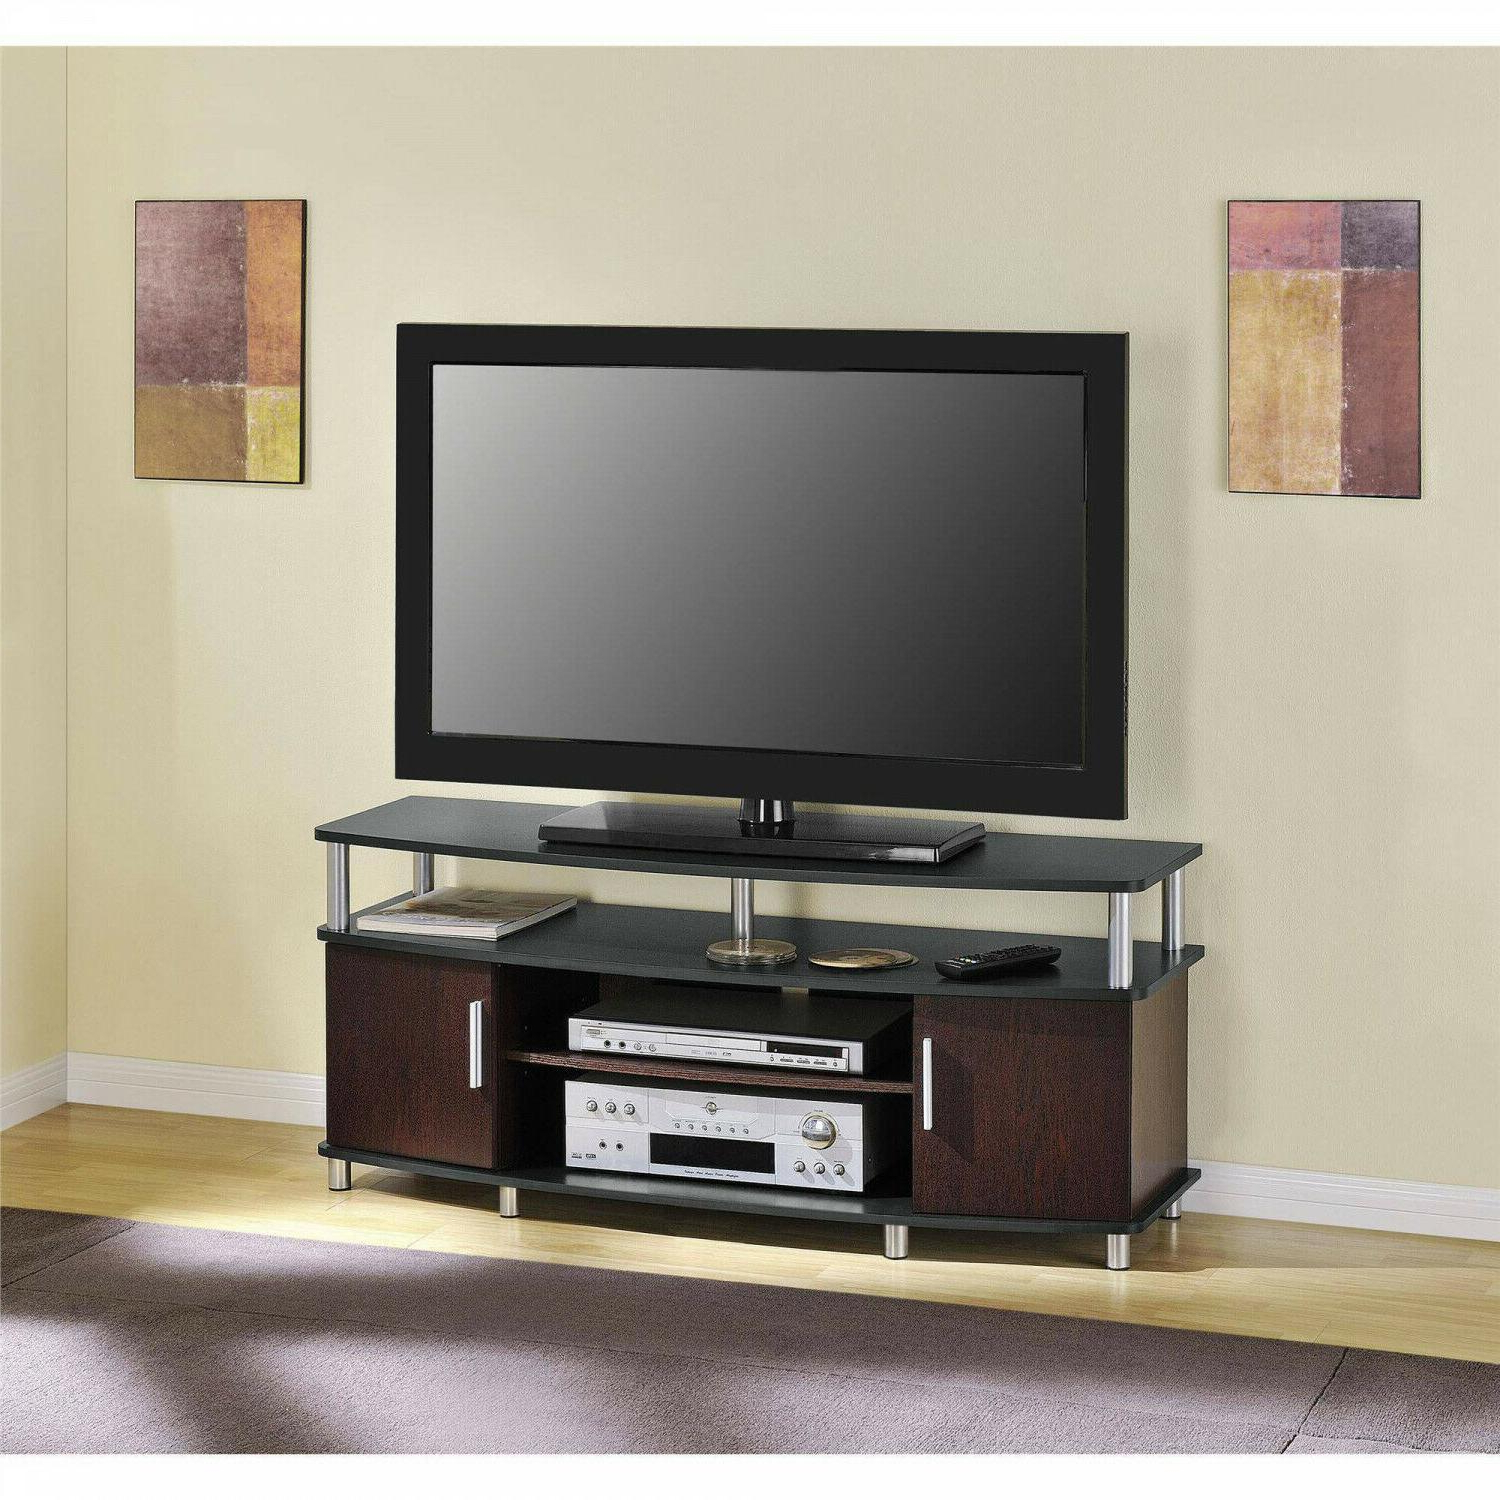 Ameriwood Home Carson Tv Stand Console Fits Regarding Carson Tv Stands In Black And Cherry (View 4 of 20)